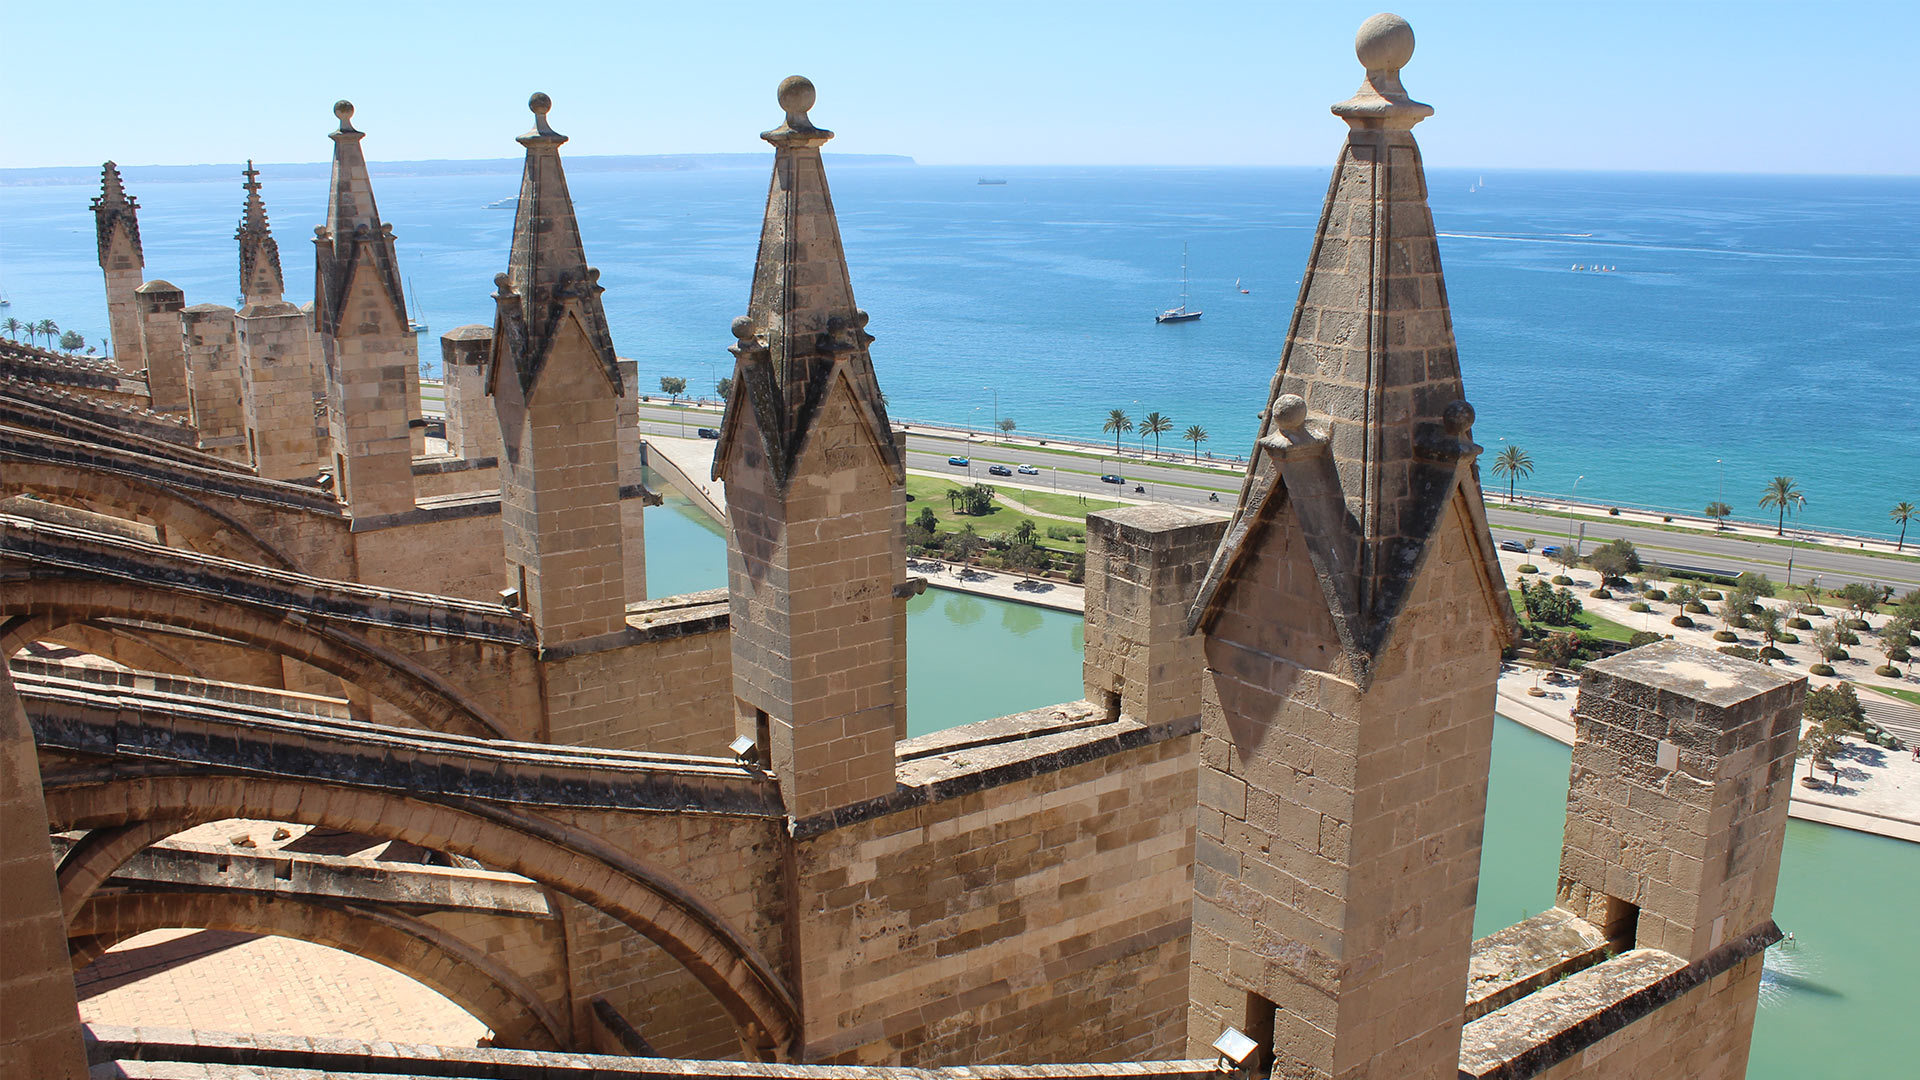 roof terraces of palma cathedral